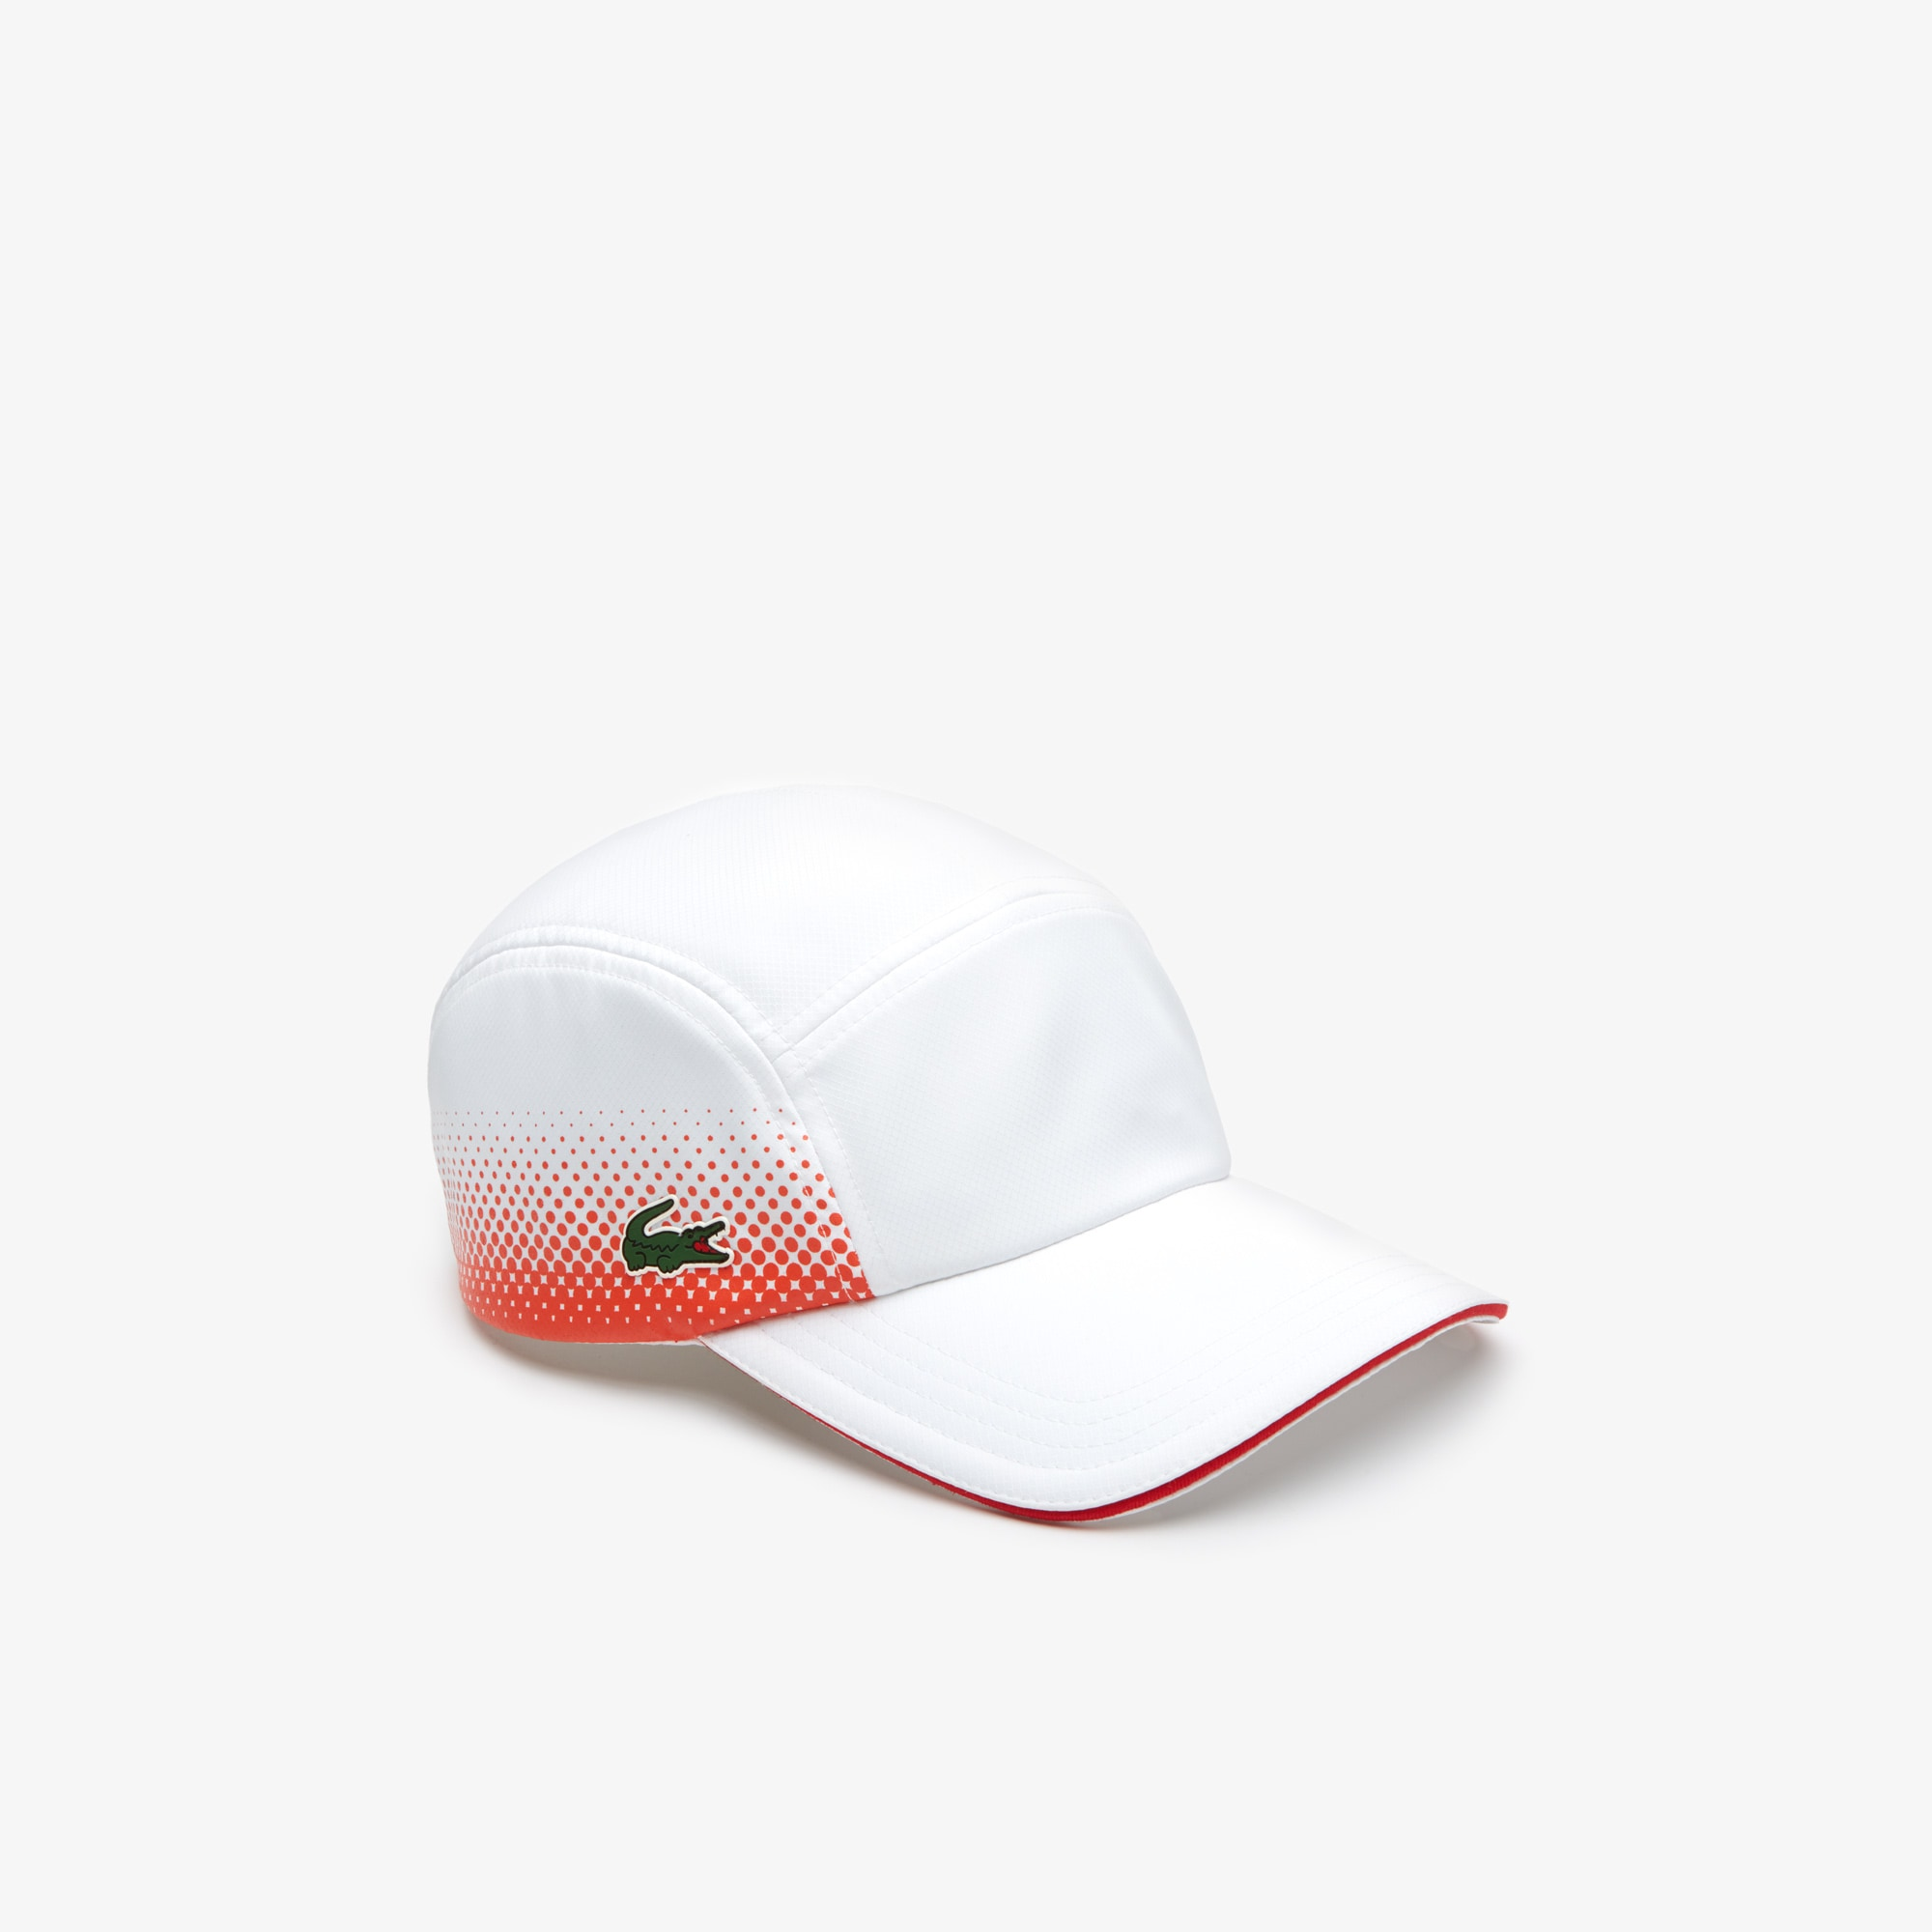 Men s Lacoste SPORT Shaded Print And Contrast Piping Tennis Cap e577721d84